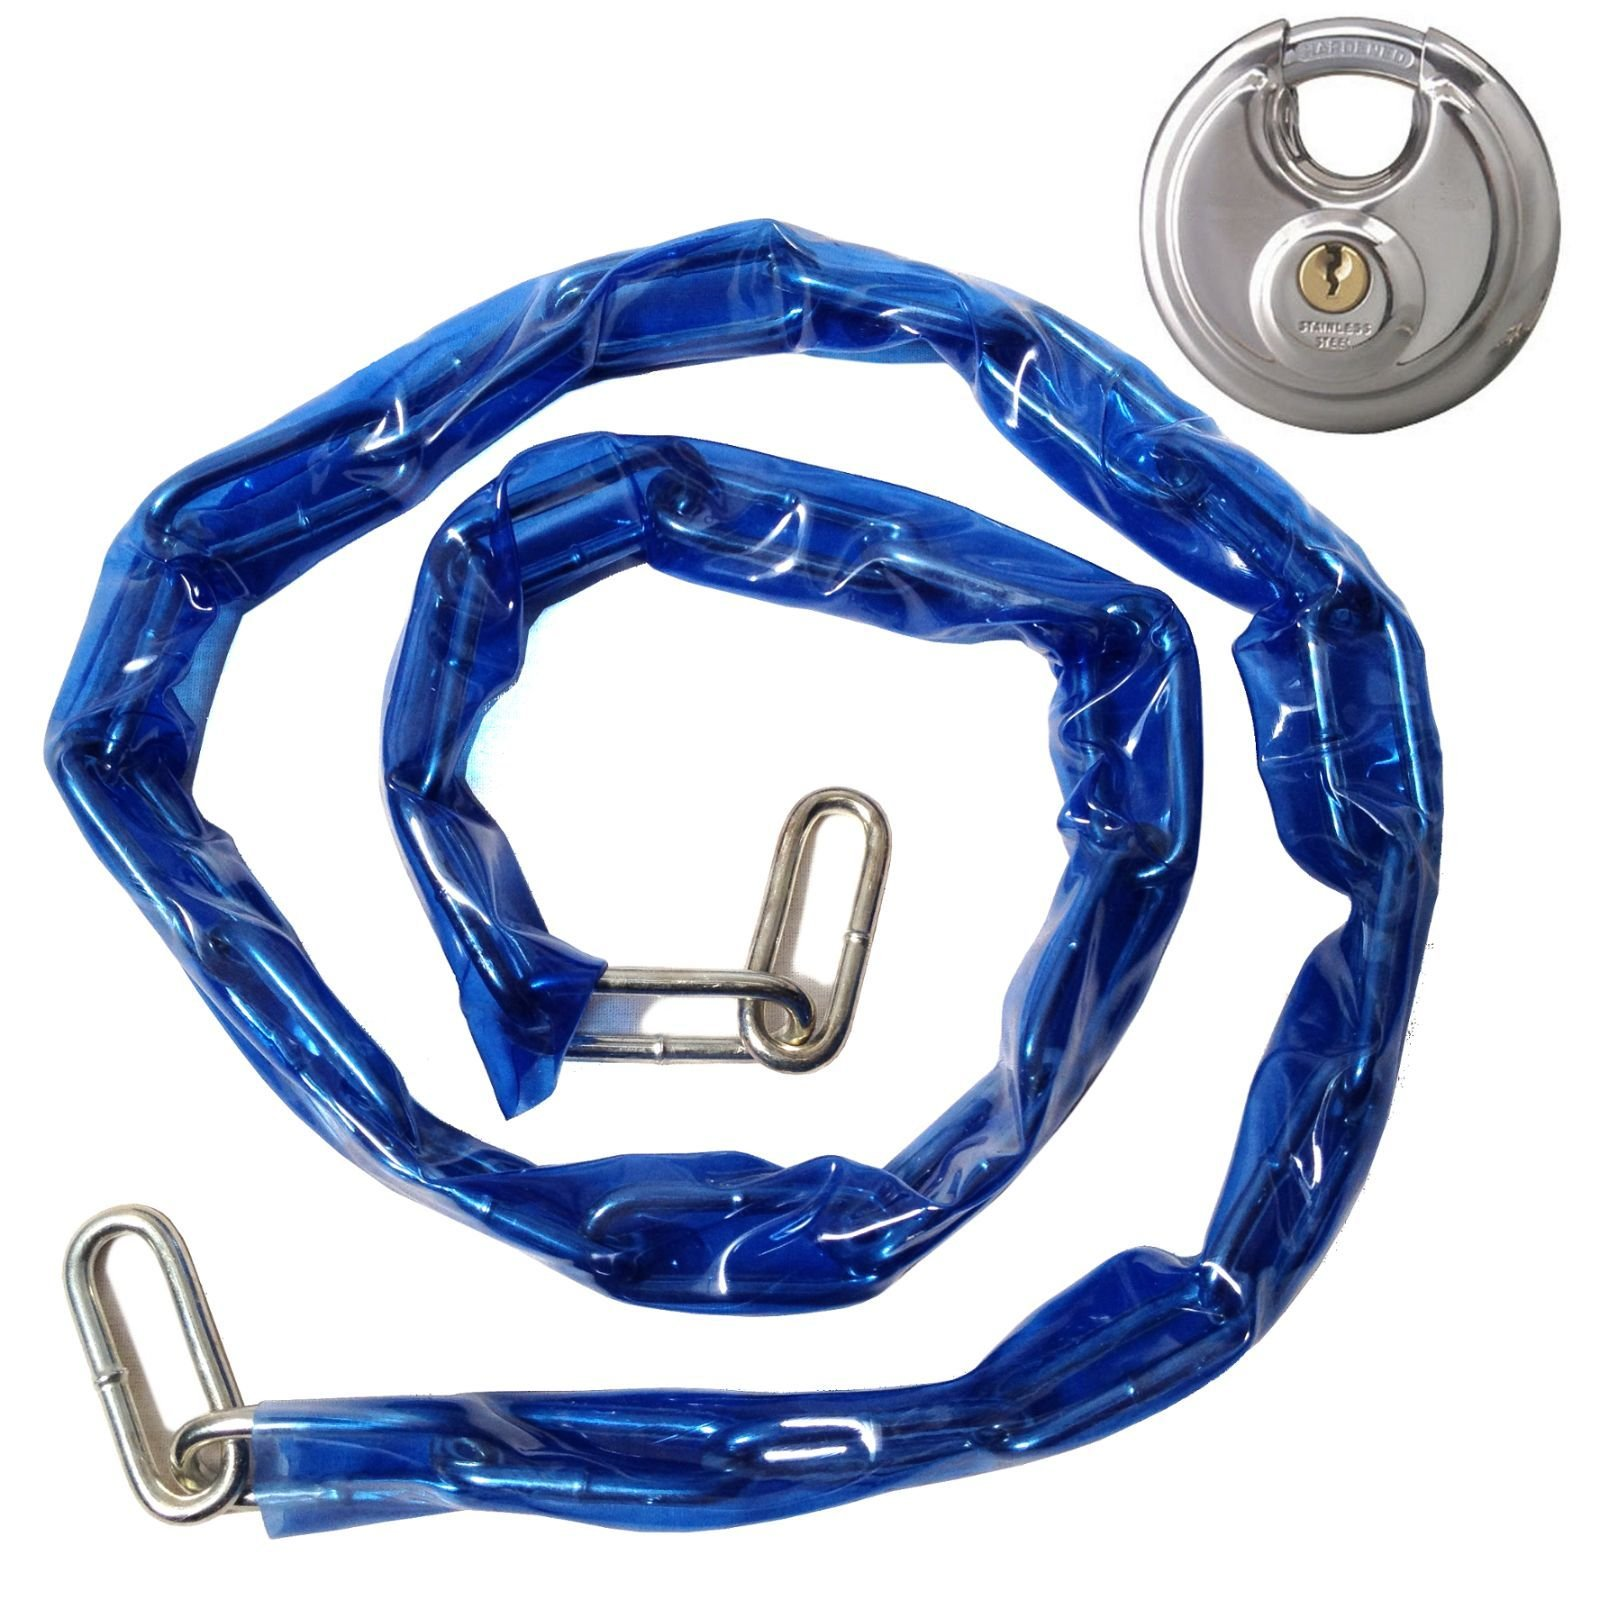 Heavy Duty 48'' Coated Metal Chain & Lock - Bicycle Security Anti-Theft Lockset with Disc Padlock